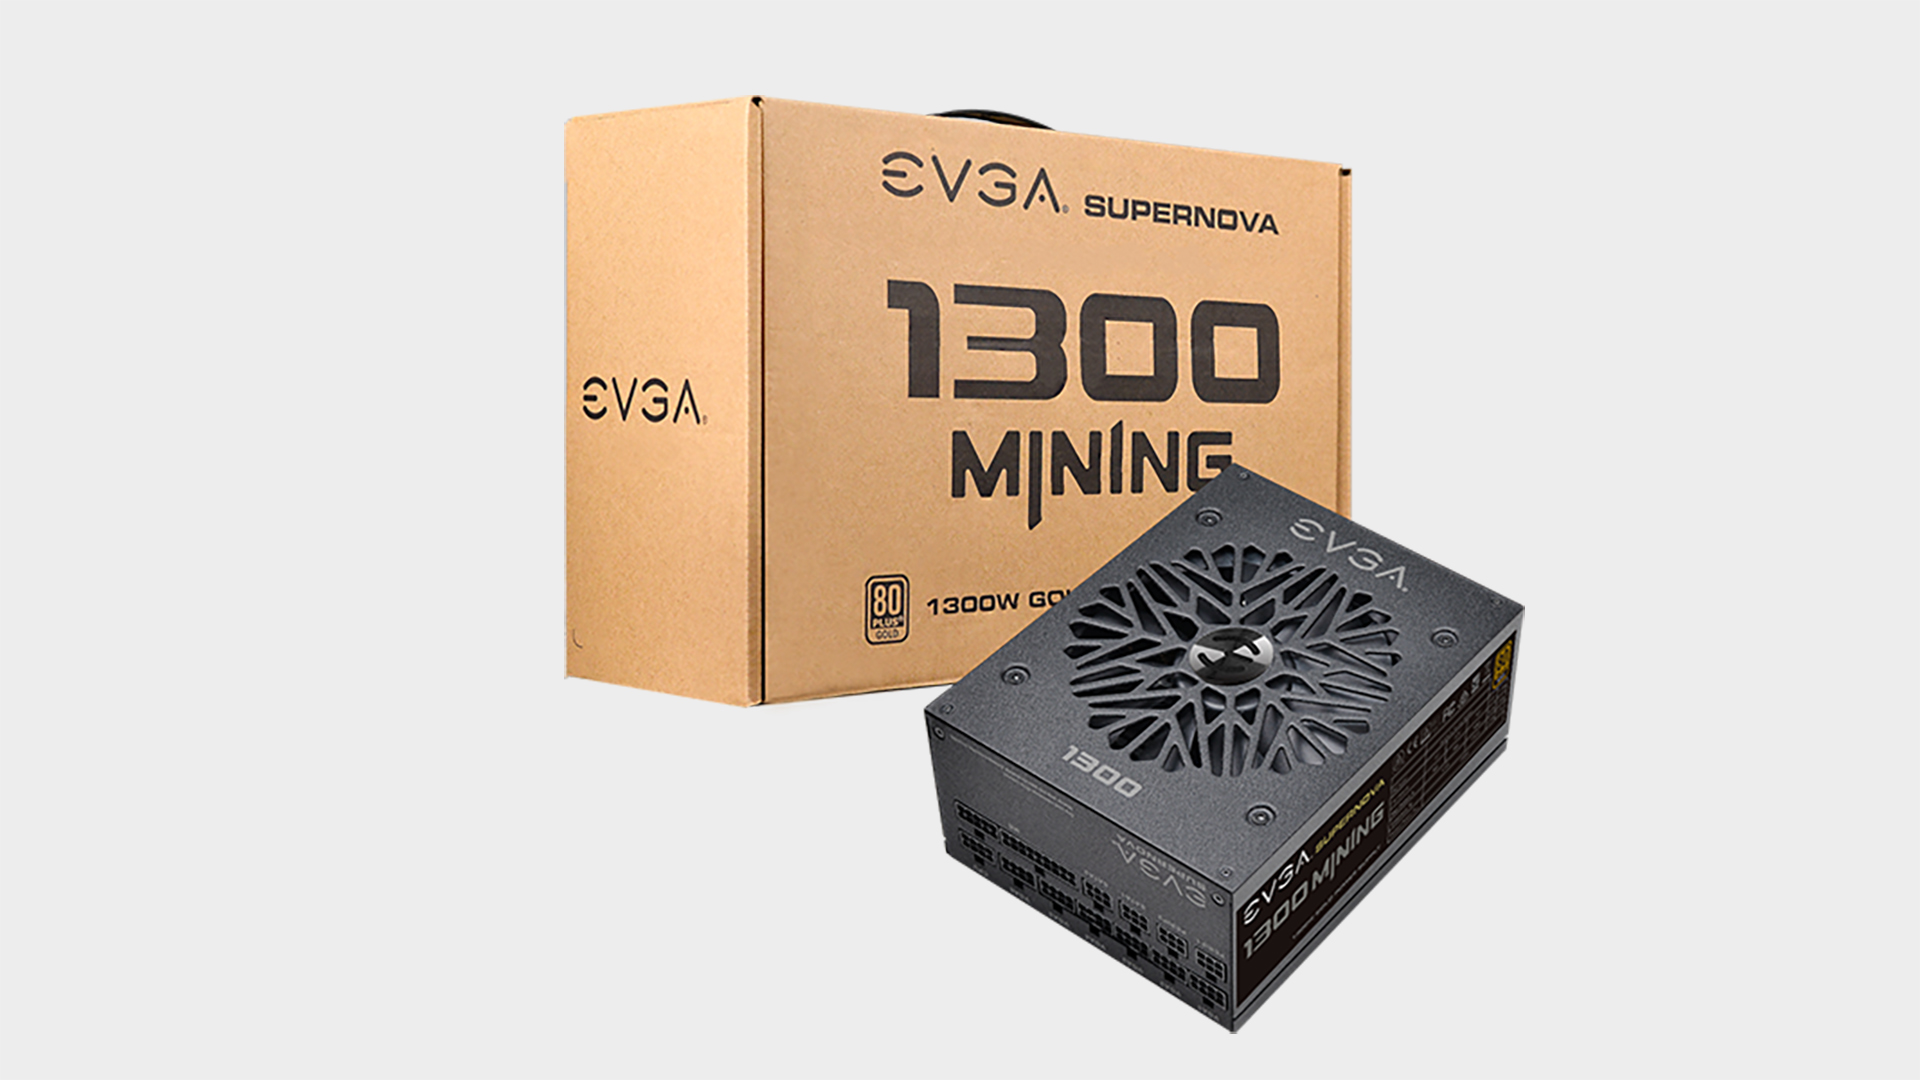 Cryptocurrency mining surge has this 1.3KW EVGA PSU on sale outside of China for the first time